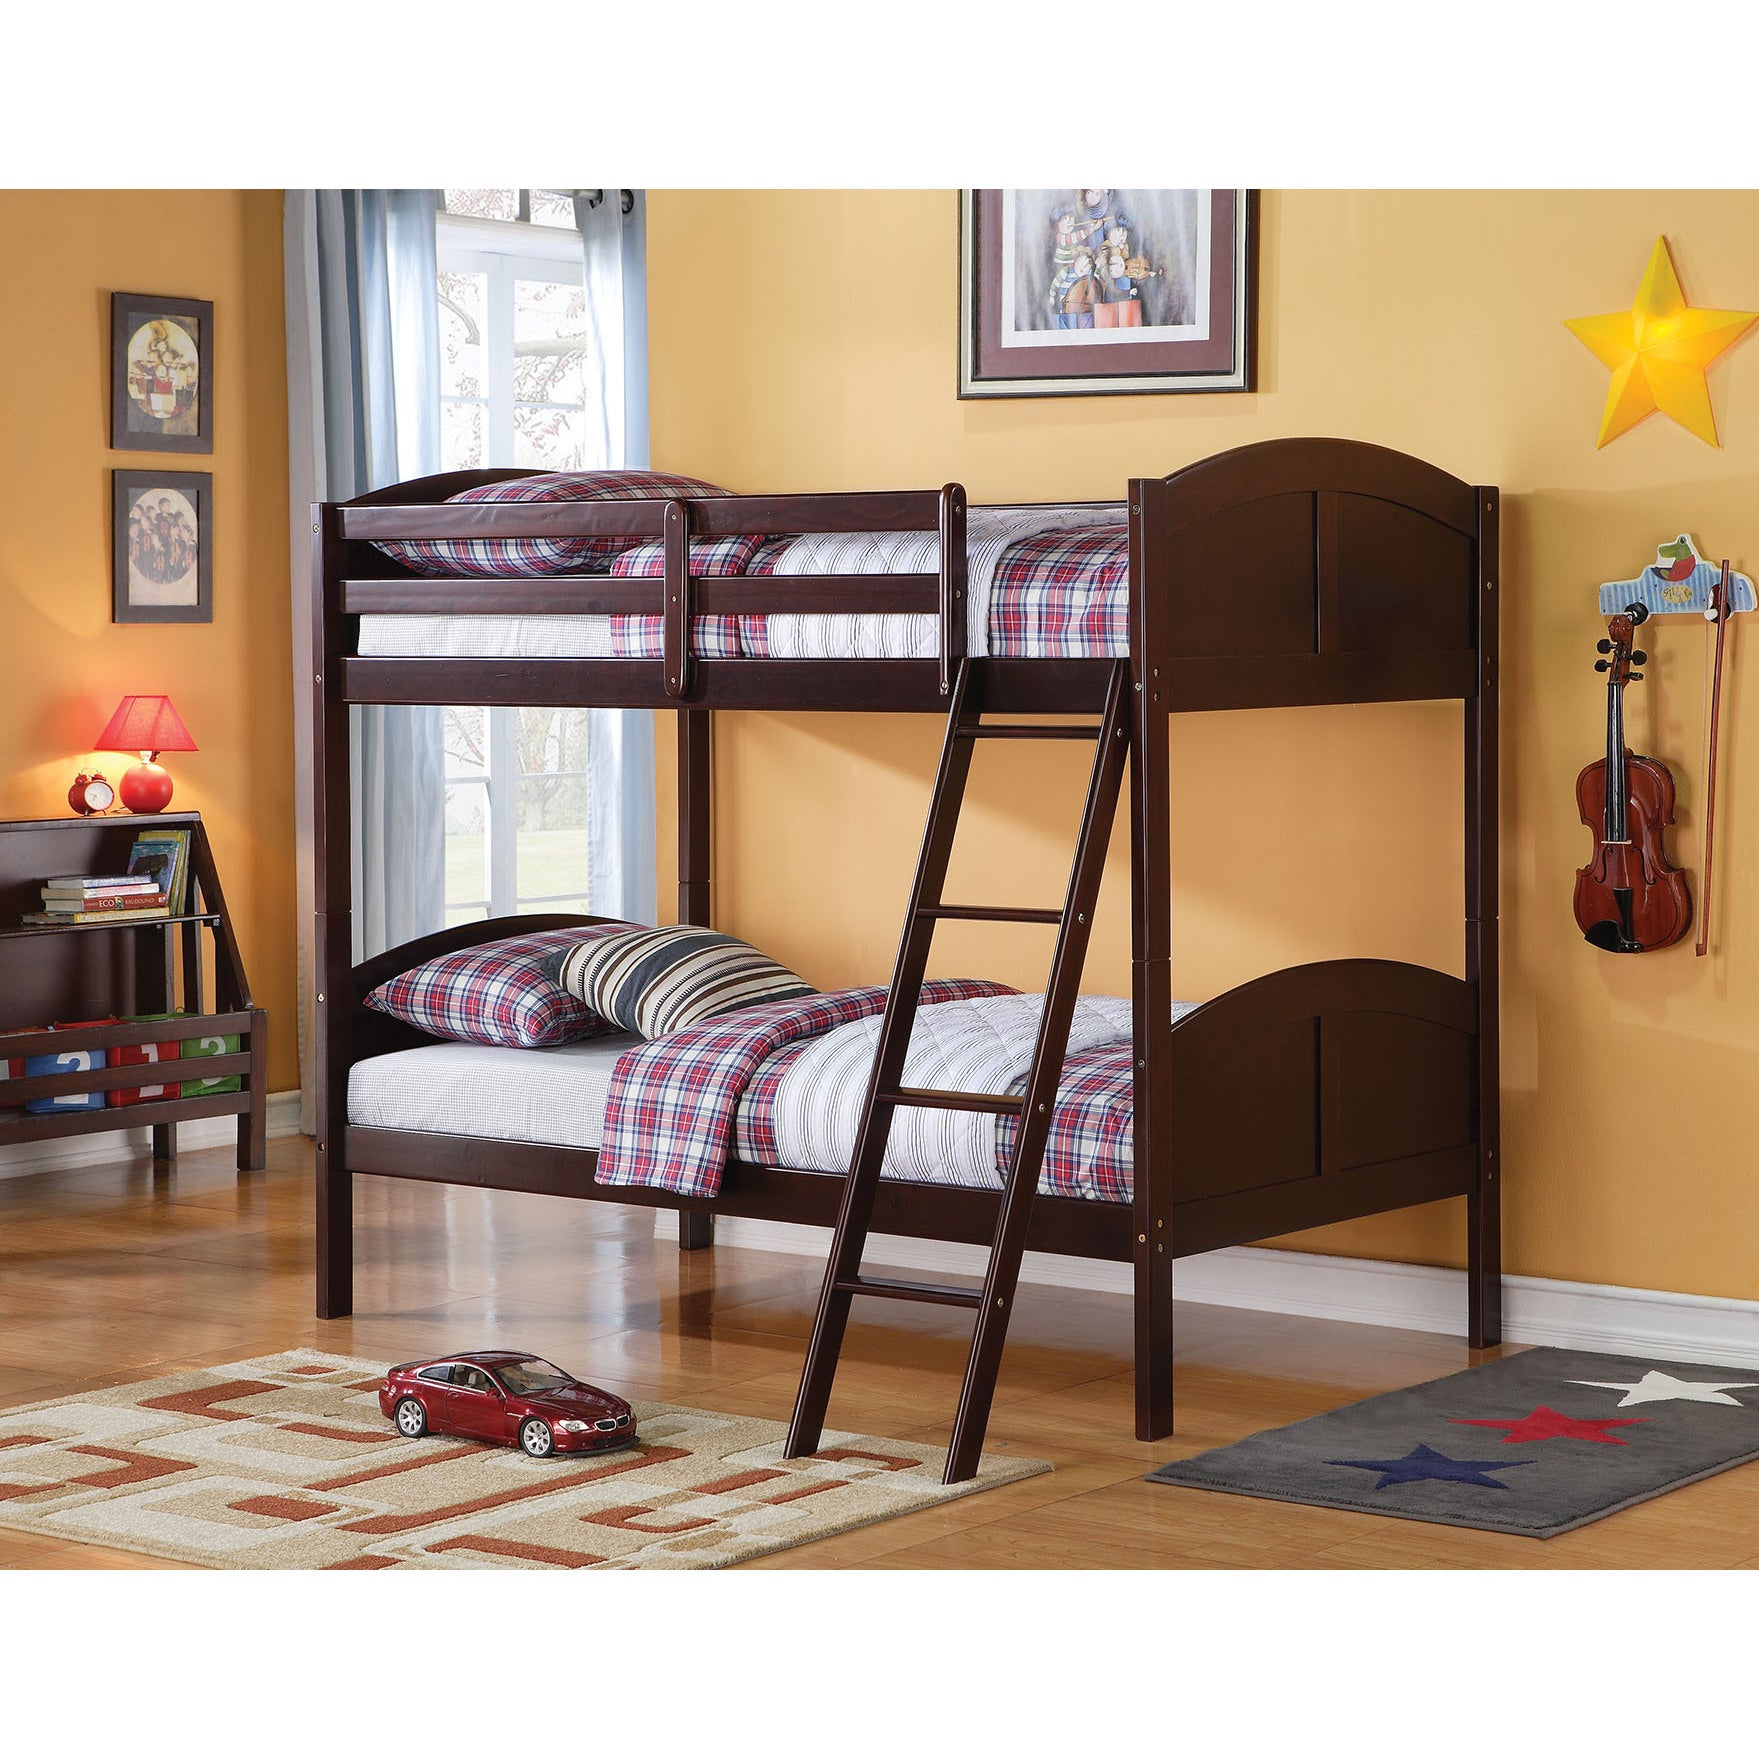 ACME Furniture Toshi Espresso Wood Twin Bunk Bed (Bunk Be...